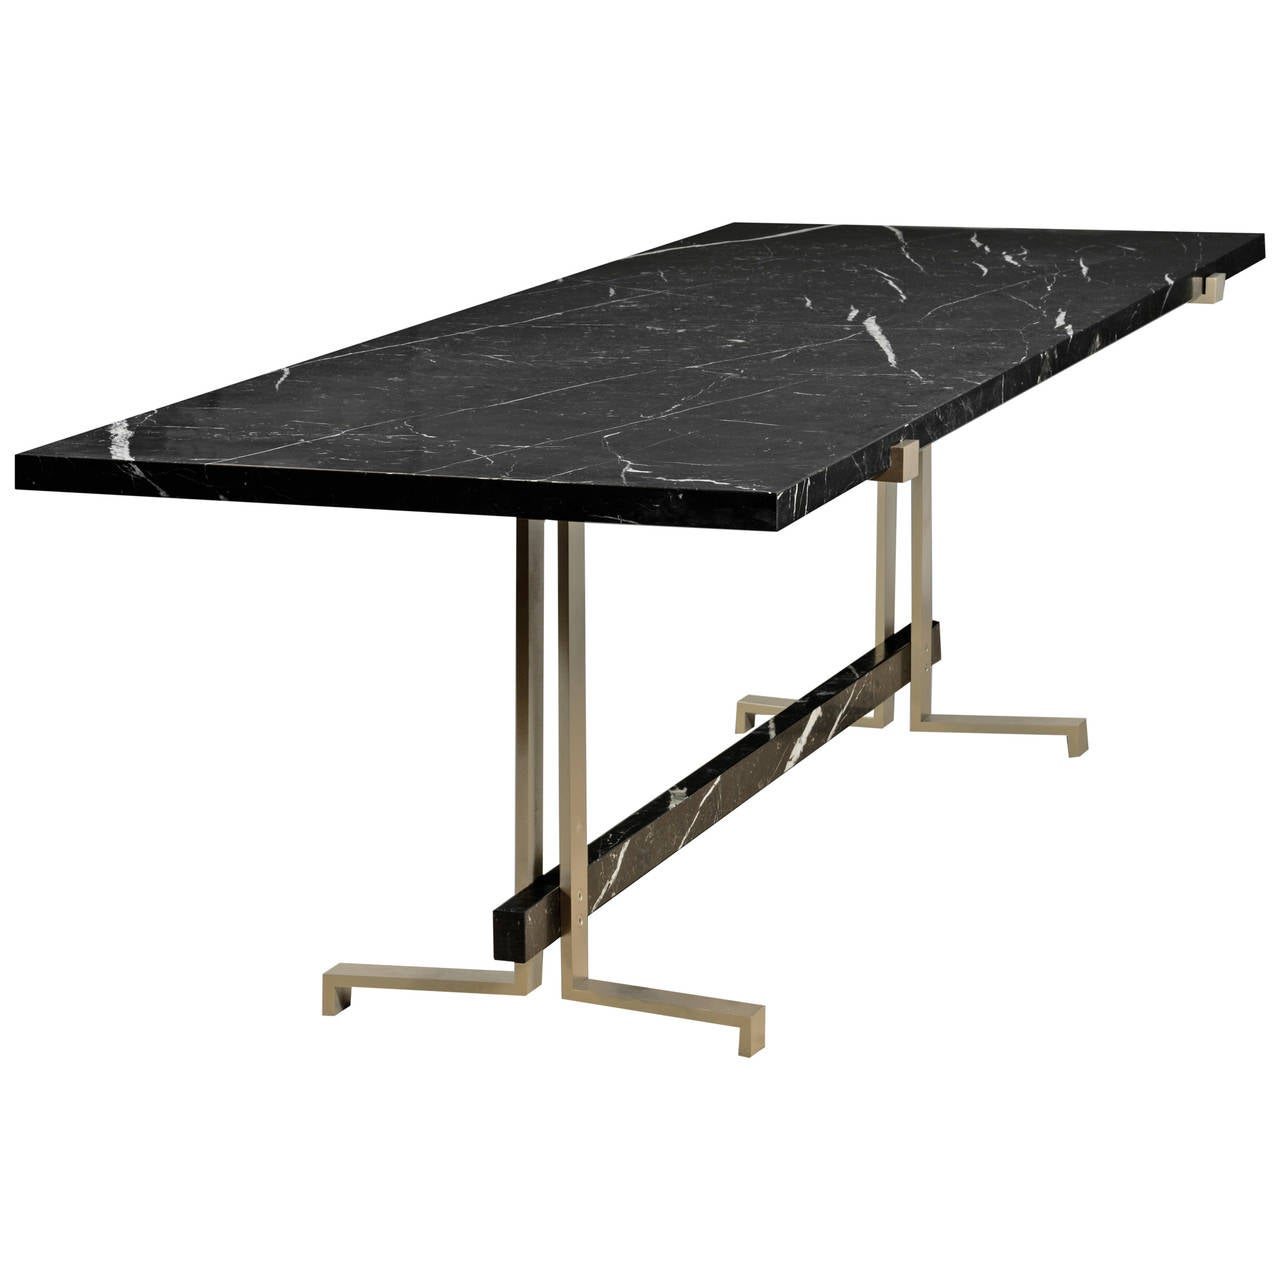 21st century high table in marquina black marble limited for Limited space dining table